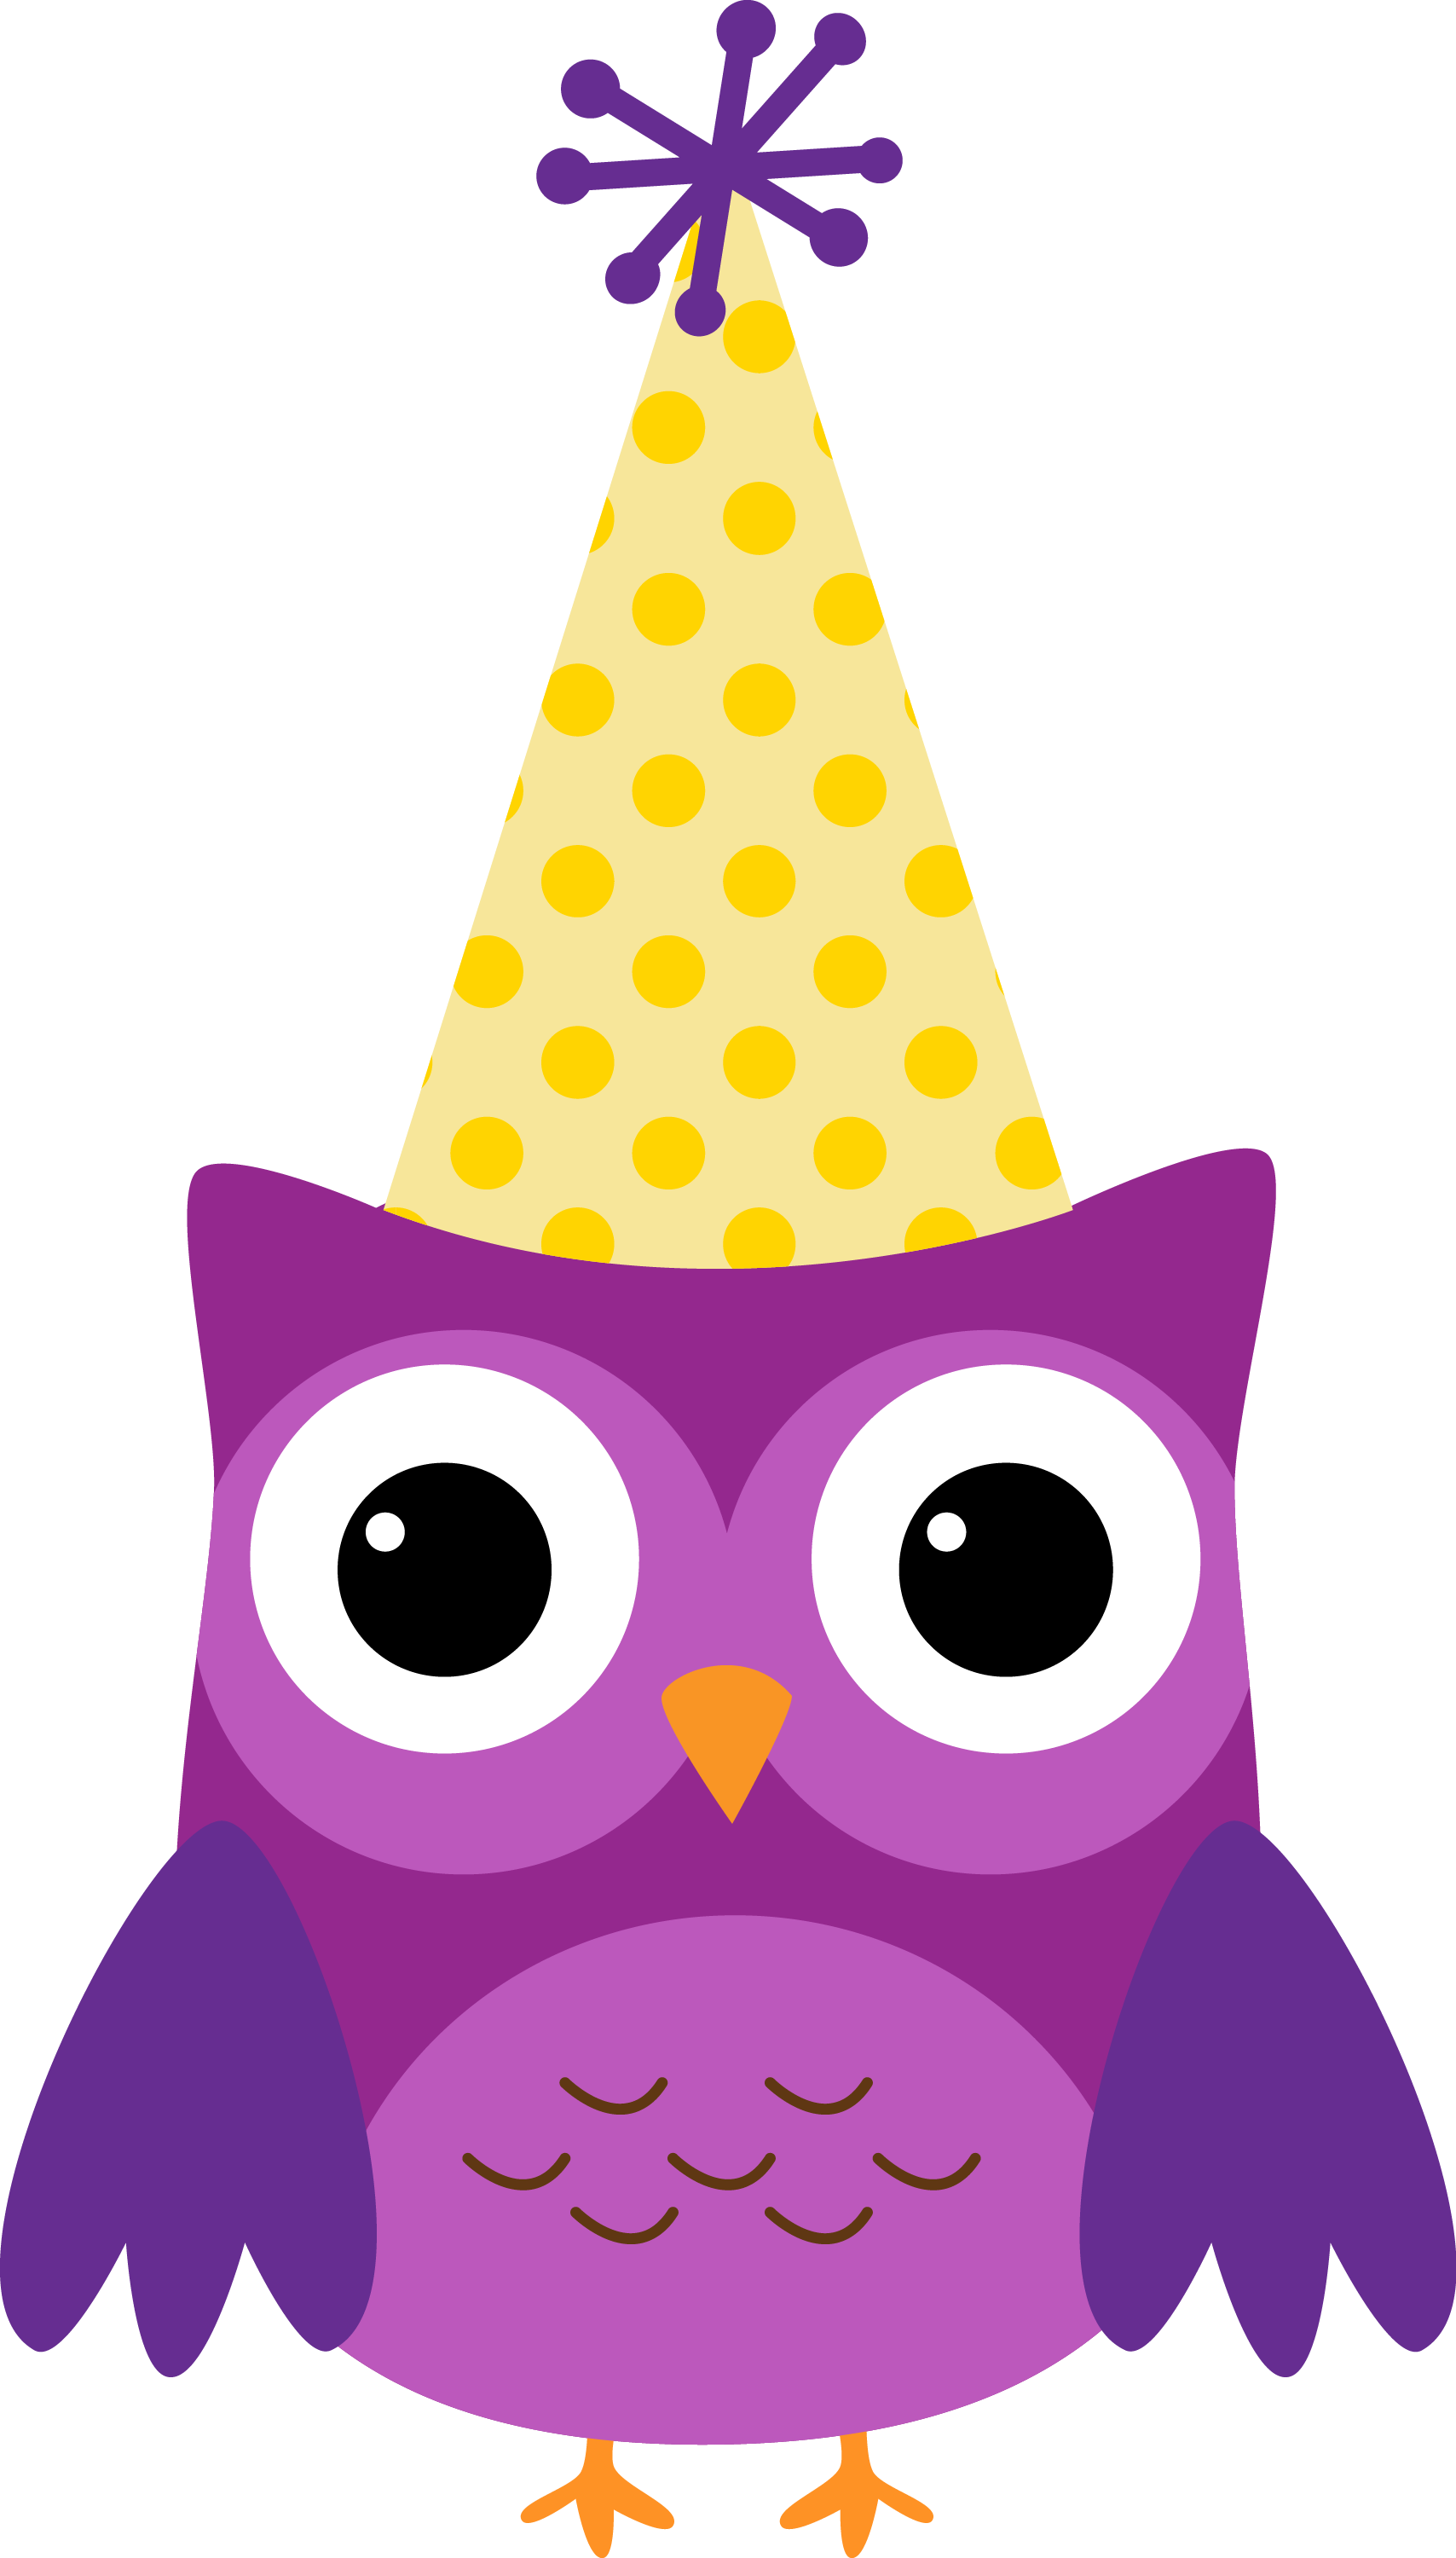 graphic royalty free library Class clipart birthdays. Photo by daniellemoraesfalcao minus.